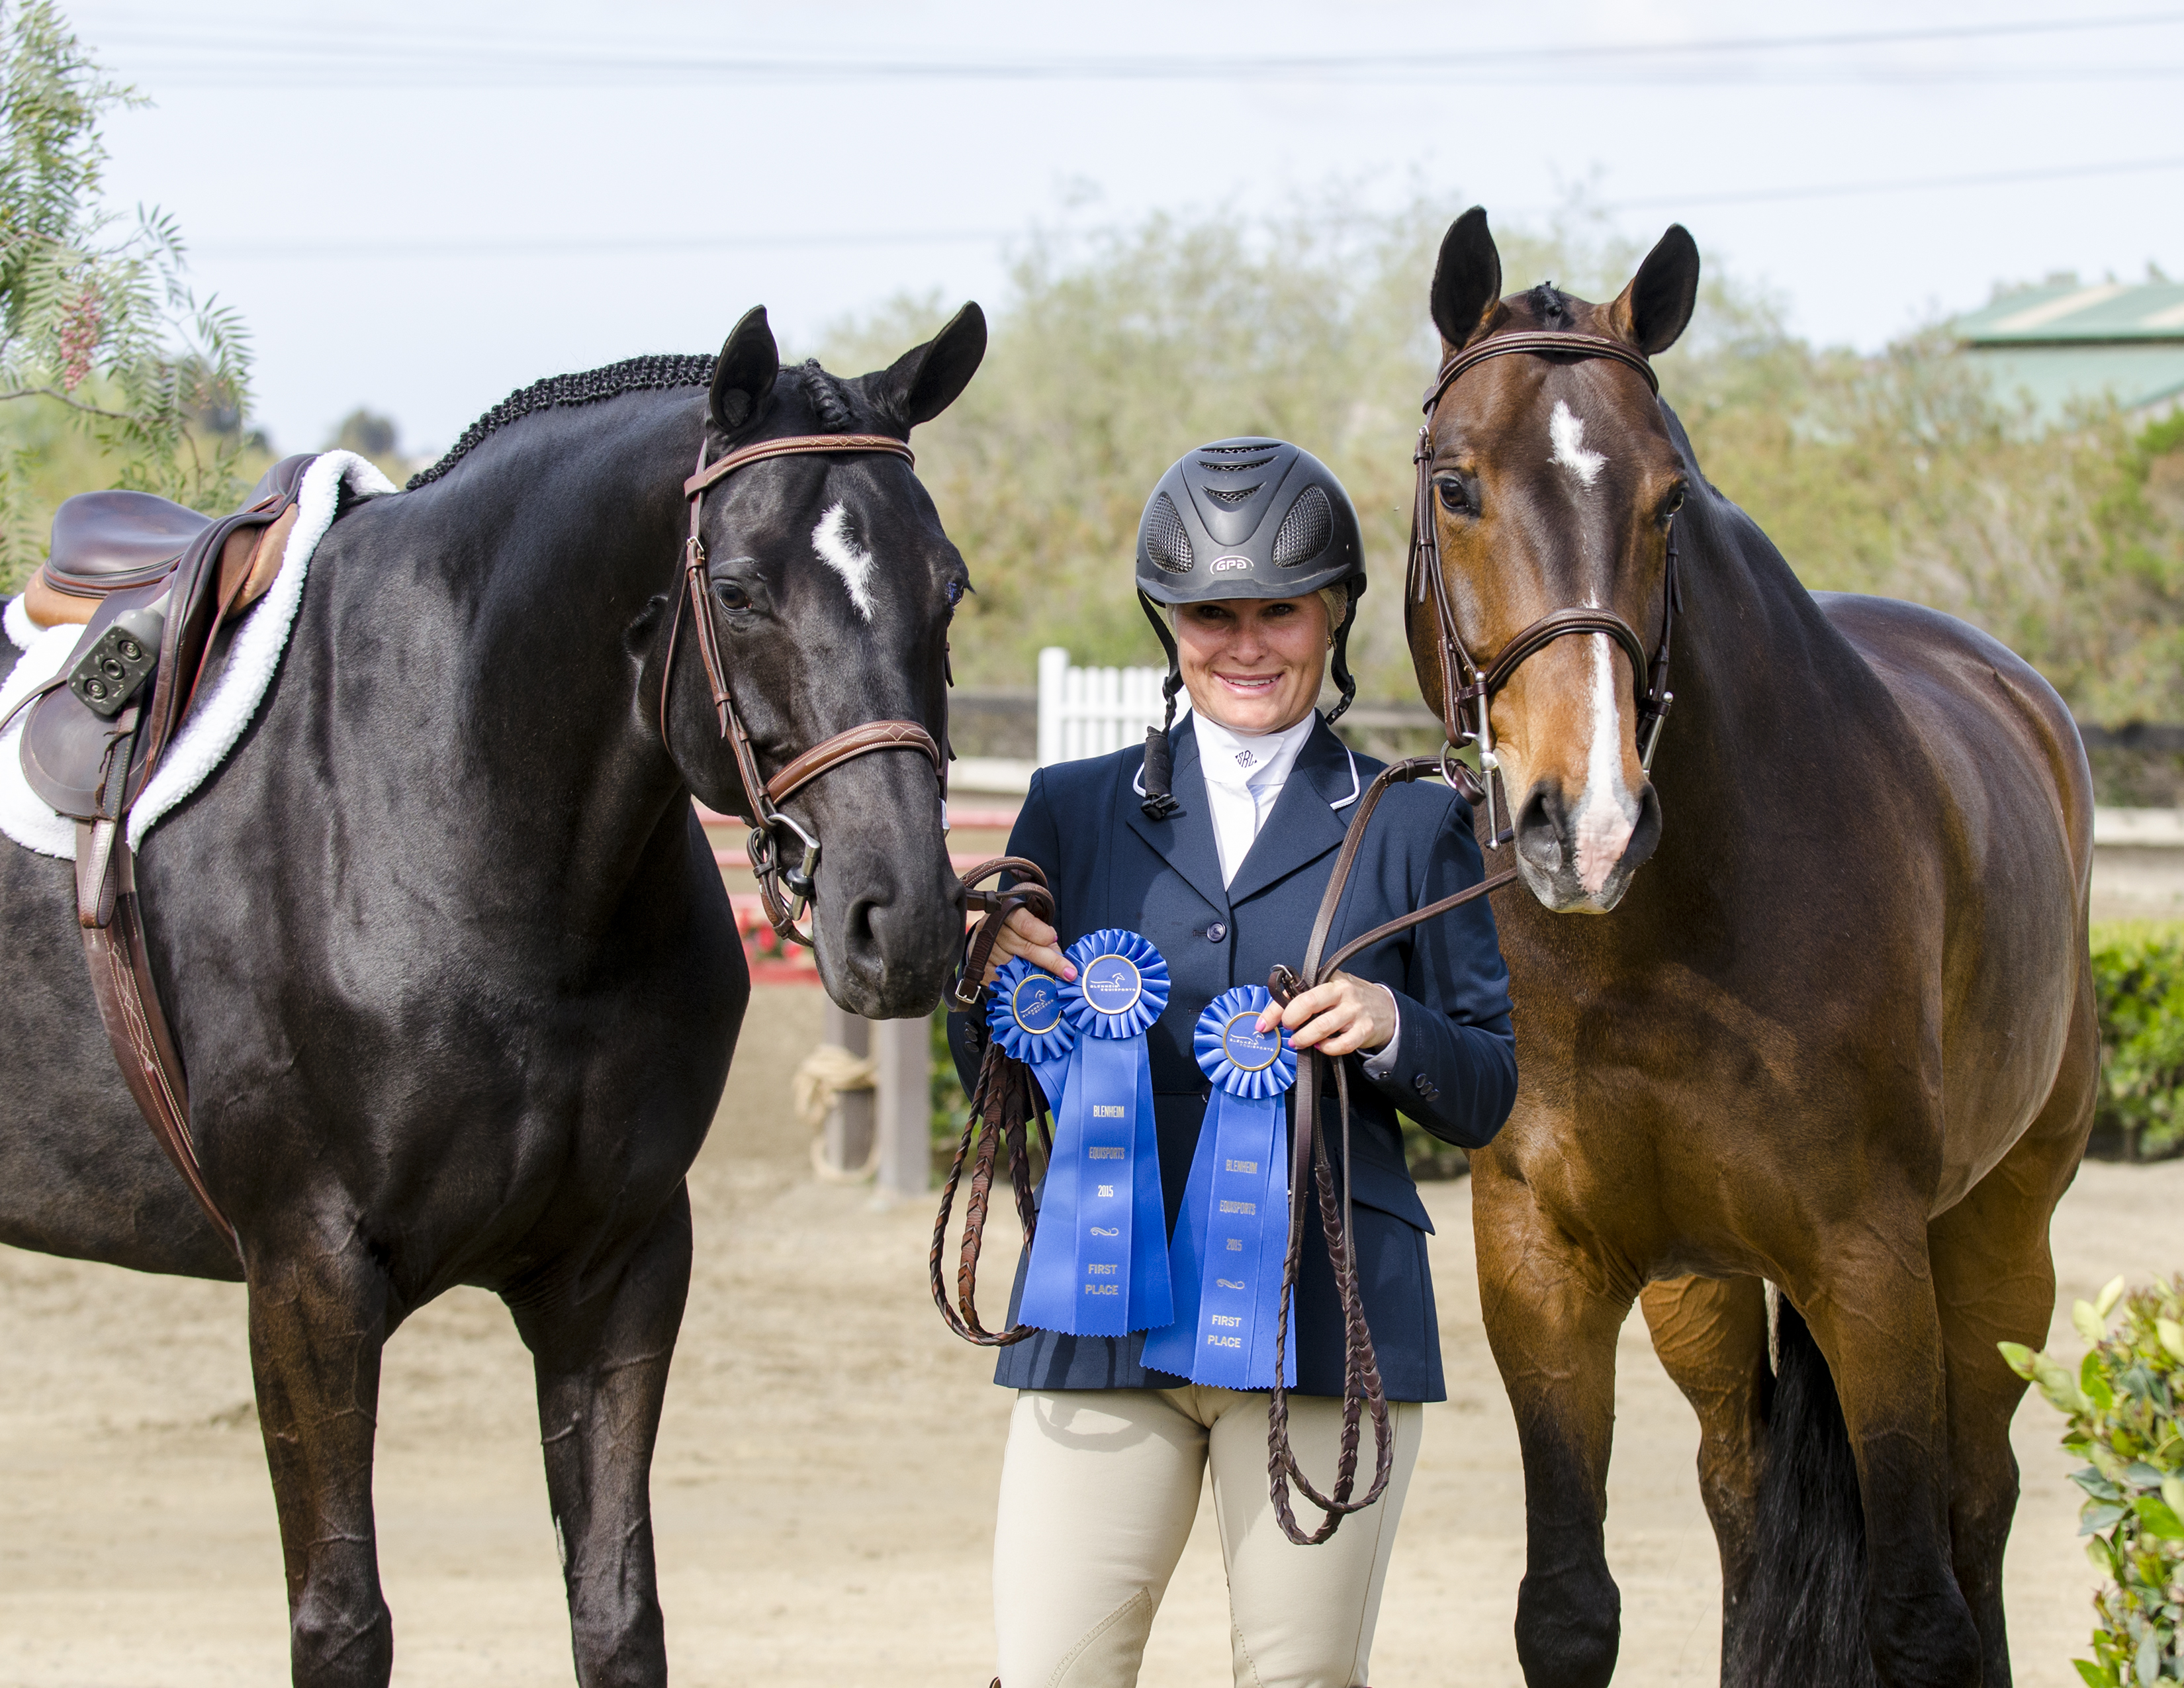 Holly Casner, The Equestrian Photographer – Horse Show Photography